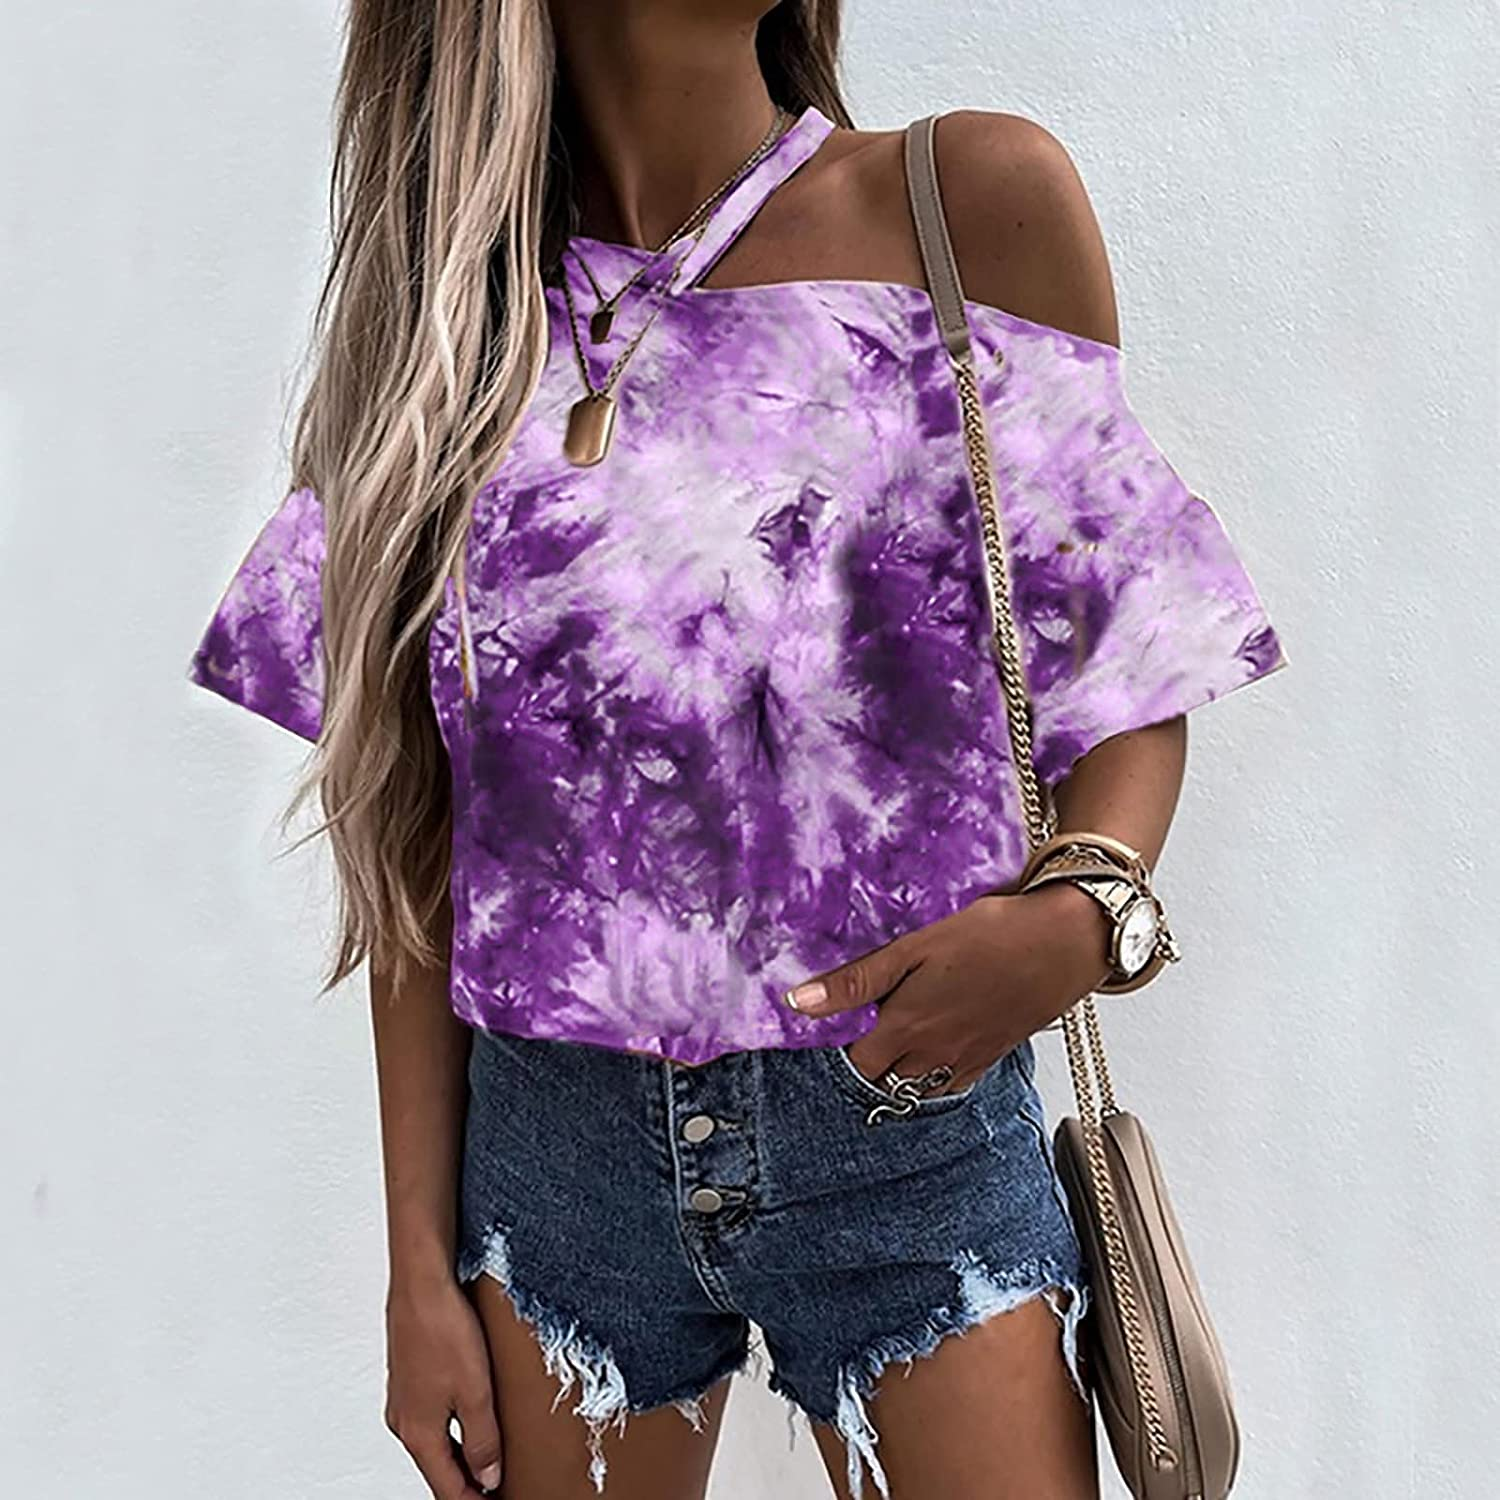 Cold Shoulder Tops for Women Casual Summer V-Neck Novelty T Shirts Tie-dye Printed Short Sleeve Blouse Tee